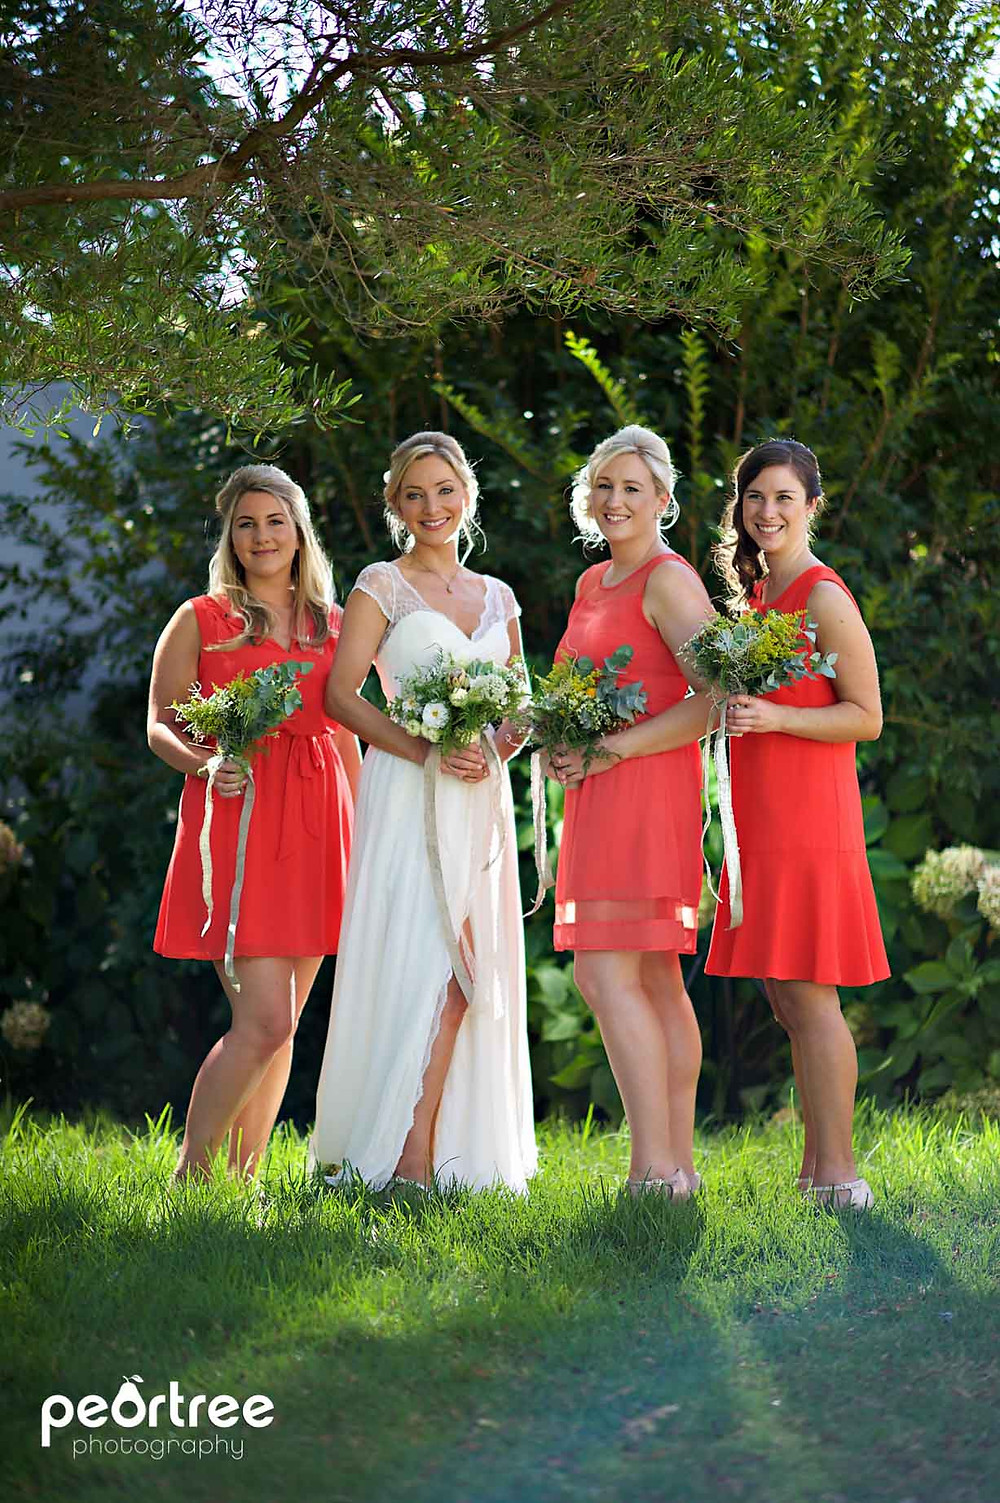 Peartree Photography | 150128 Dean_Emily | http://peartree.co.za/blog/